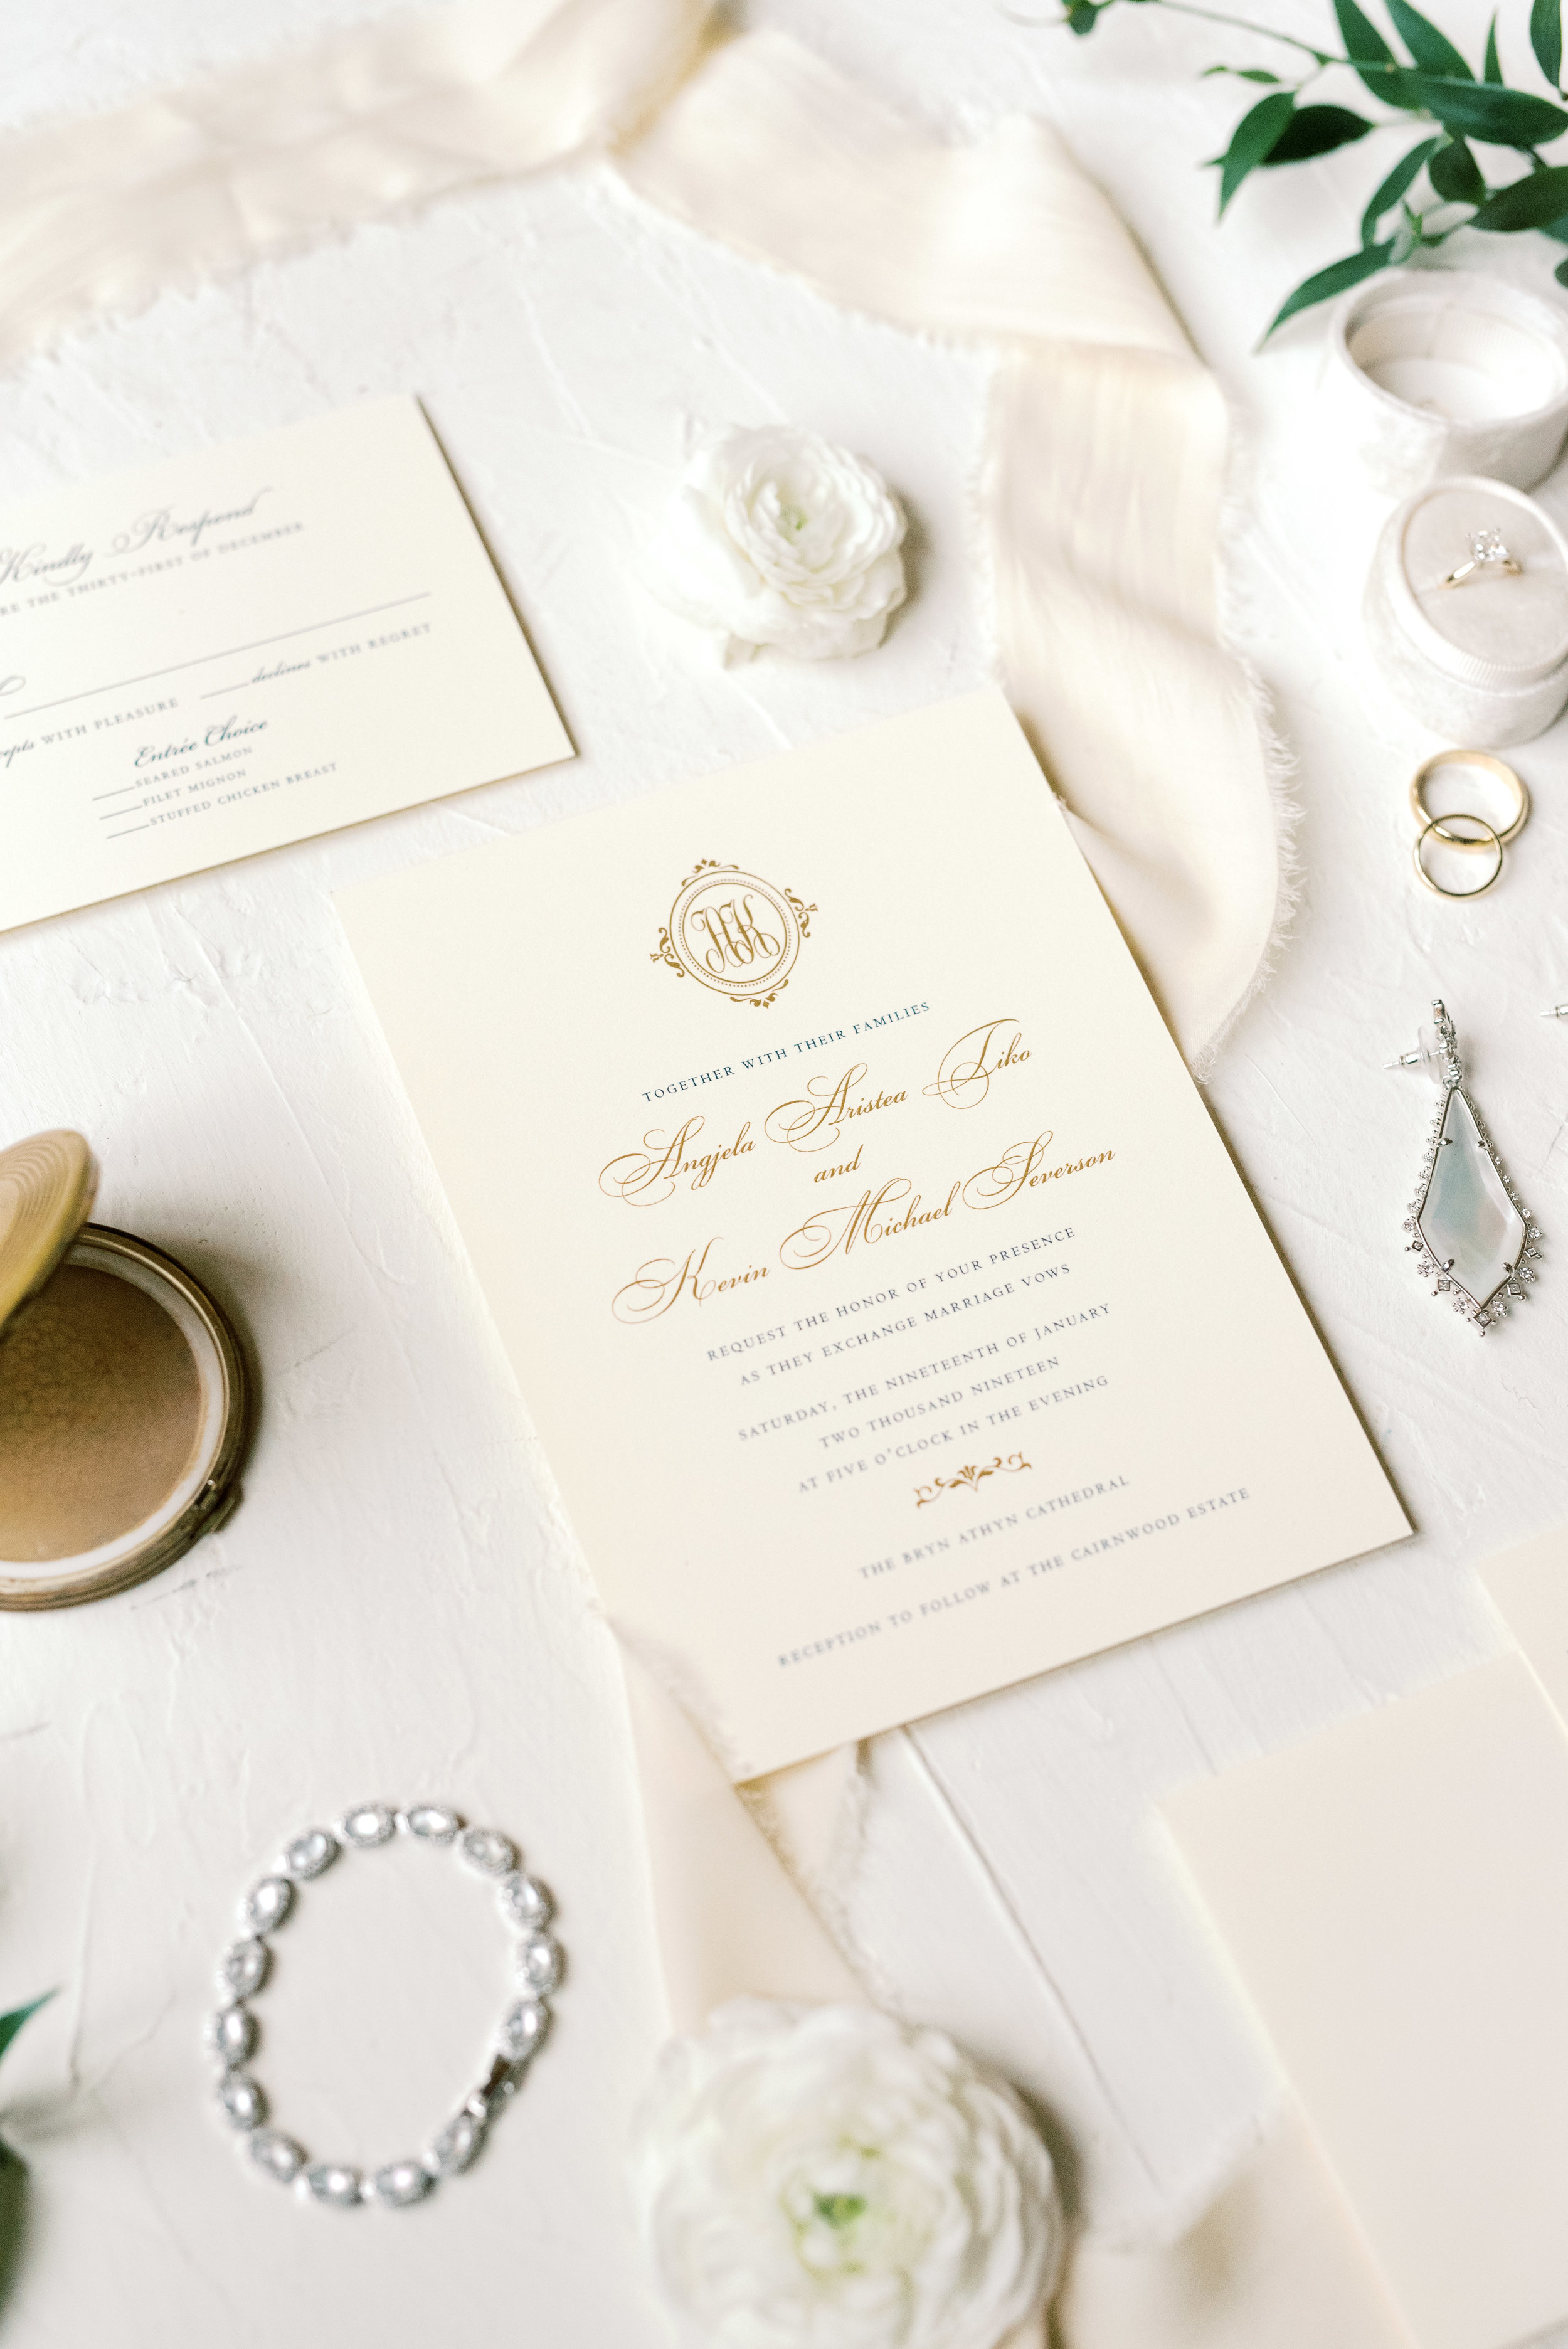 We simply adore the elegance of a traditional white invitation with a little pop of gold foil, it was the perfect match for this romantic and classic wedding day for their french inspired green and white Cairnwood Estate wedding.